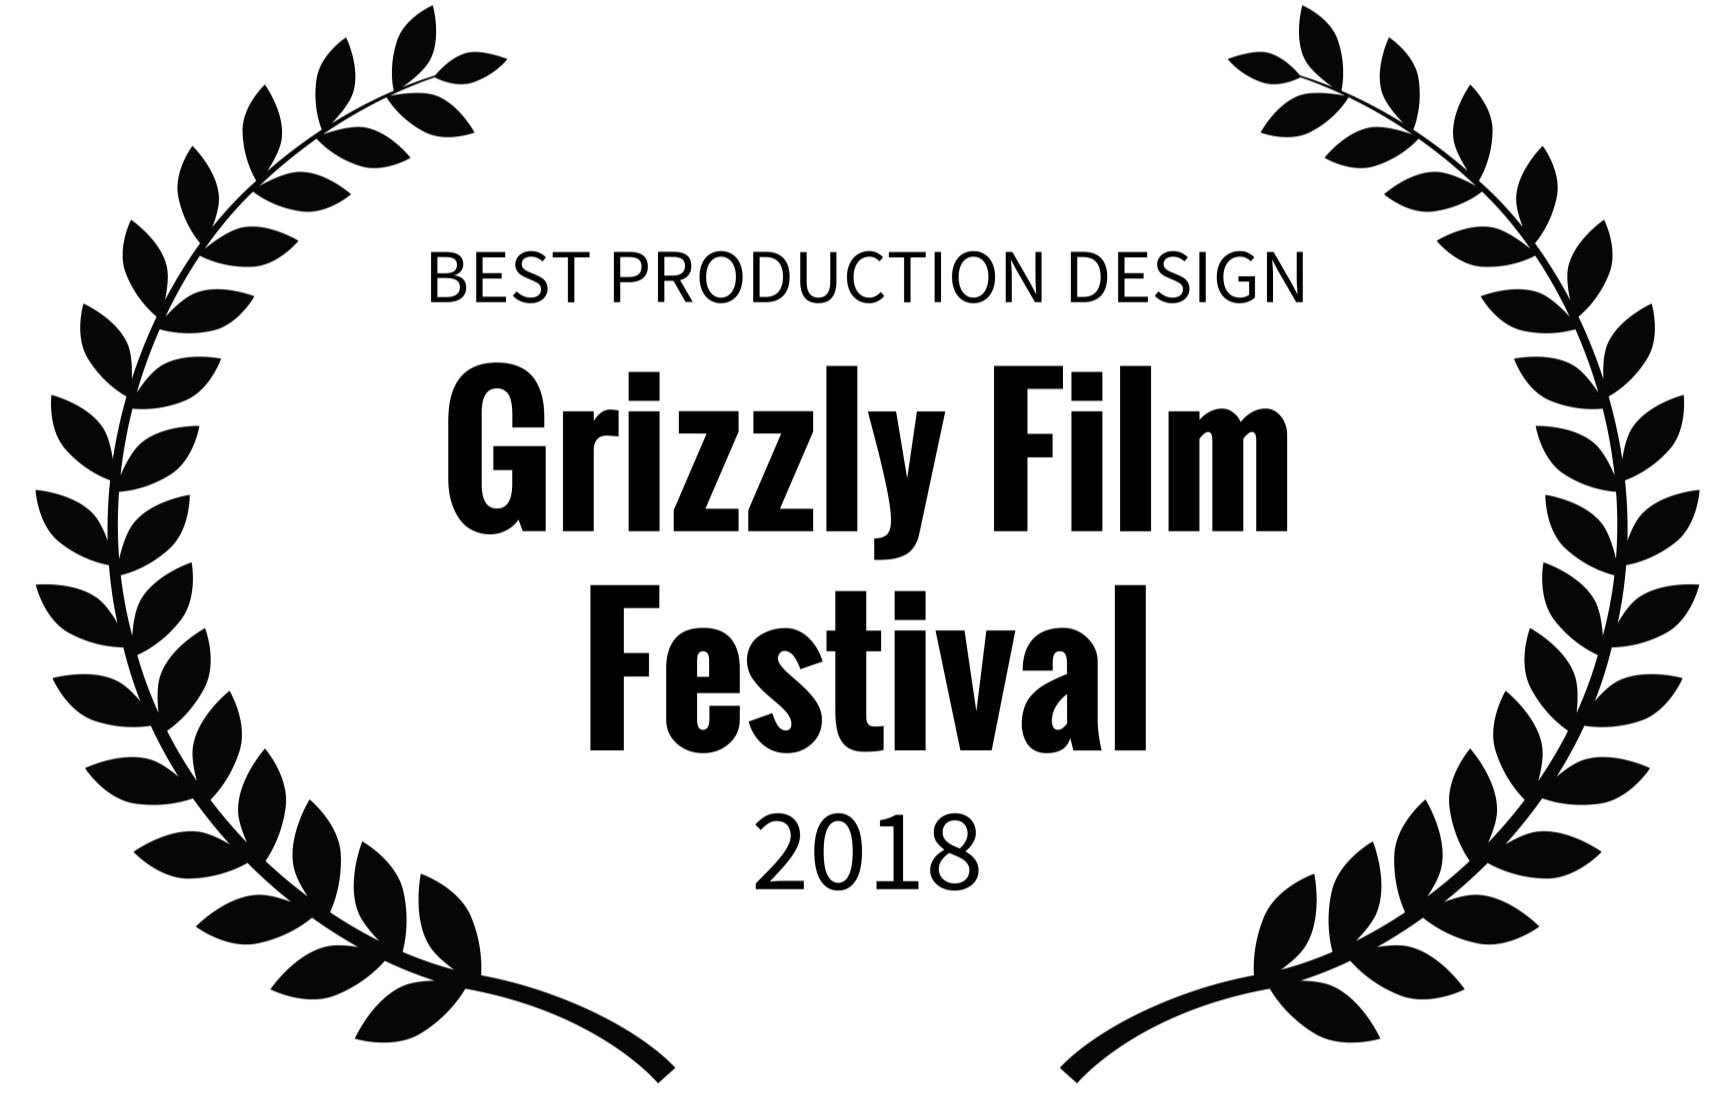 BEST+PRODUCTION+DESIGN+-+Grizzly+Film+Festival+-+2018+copy+2.jpg